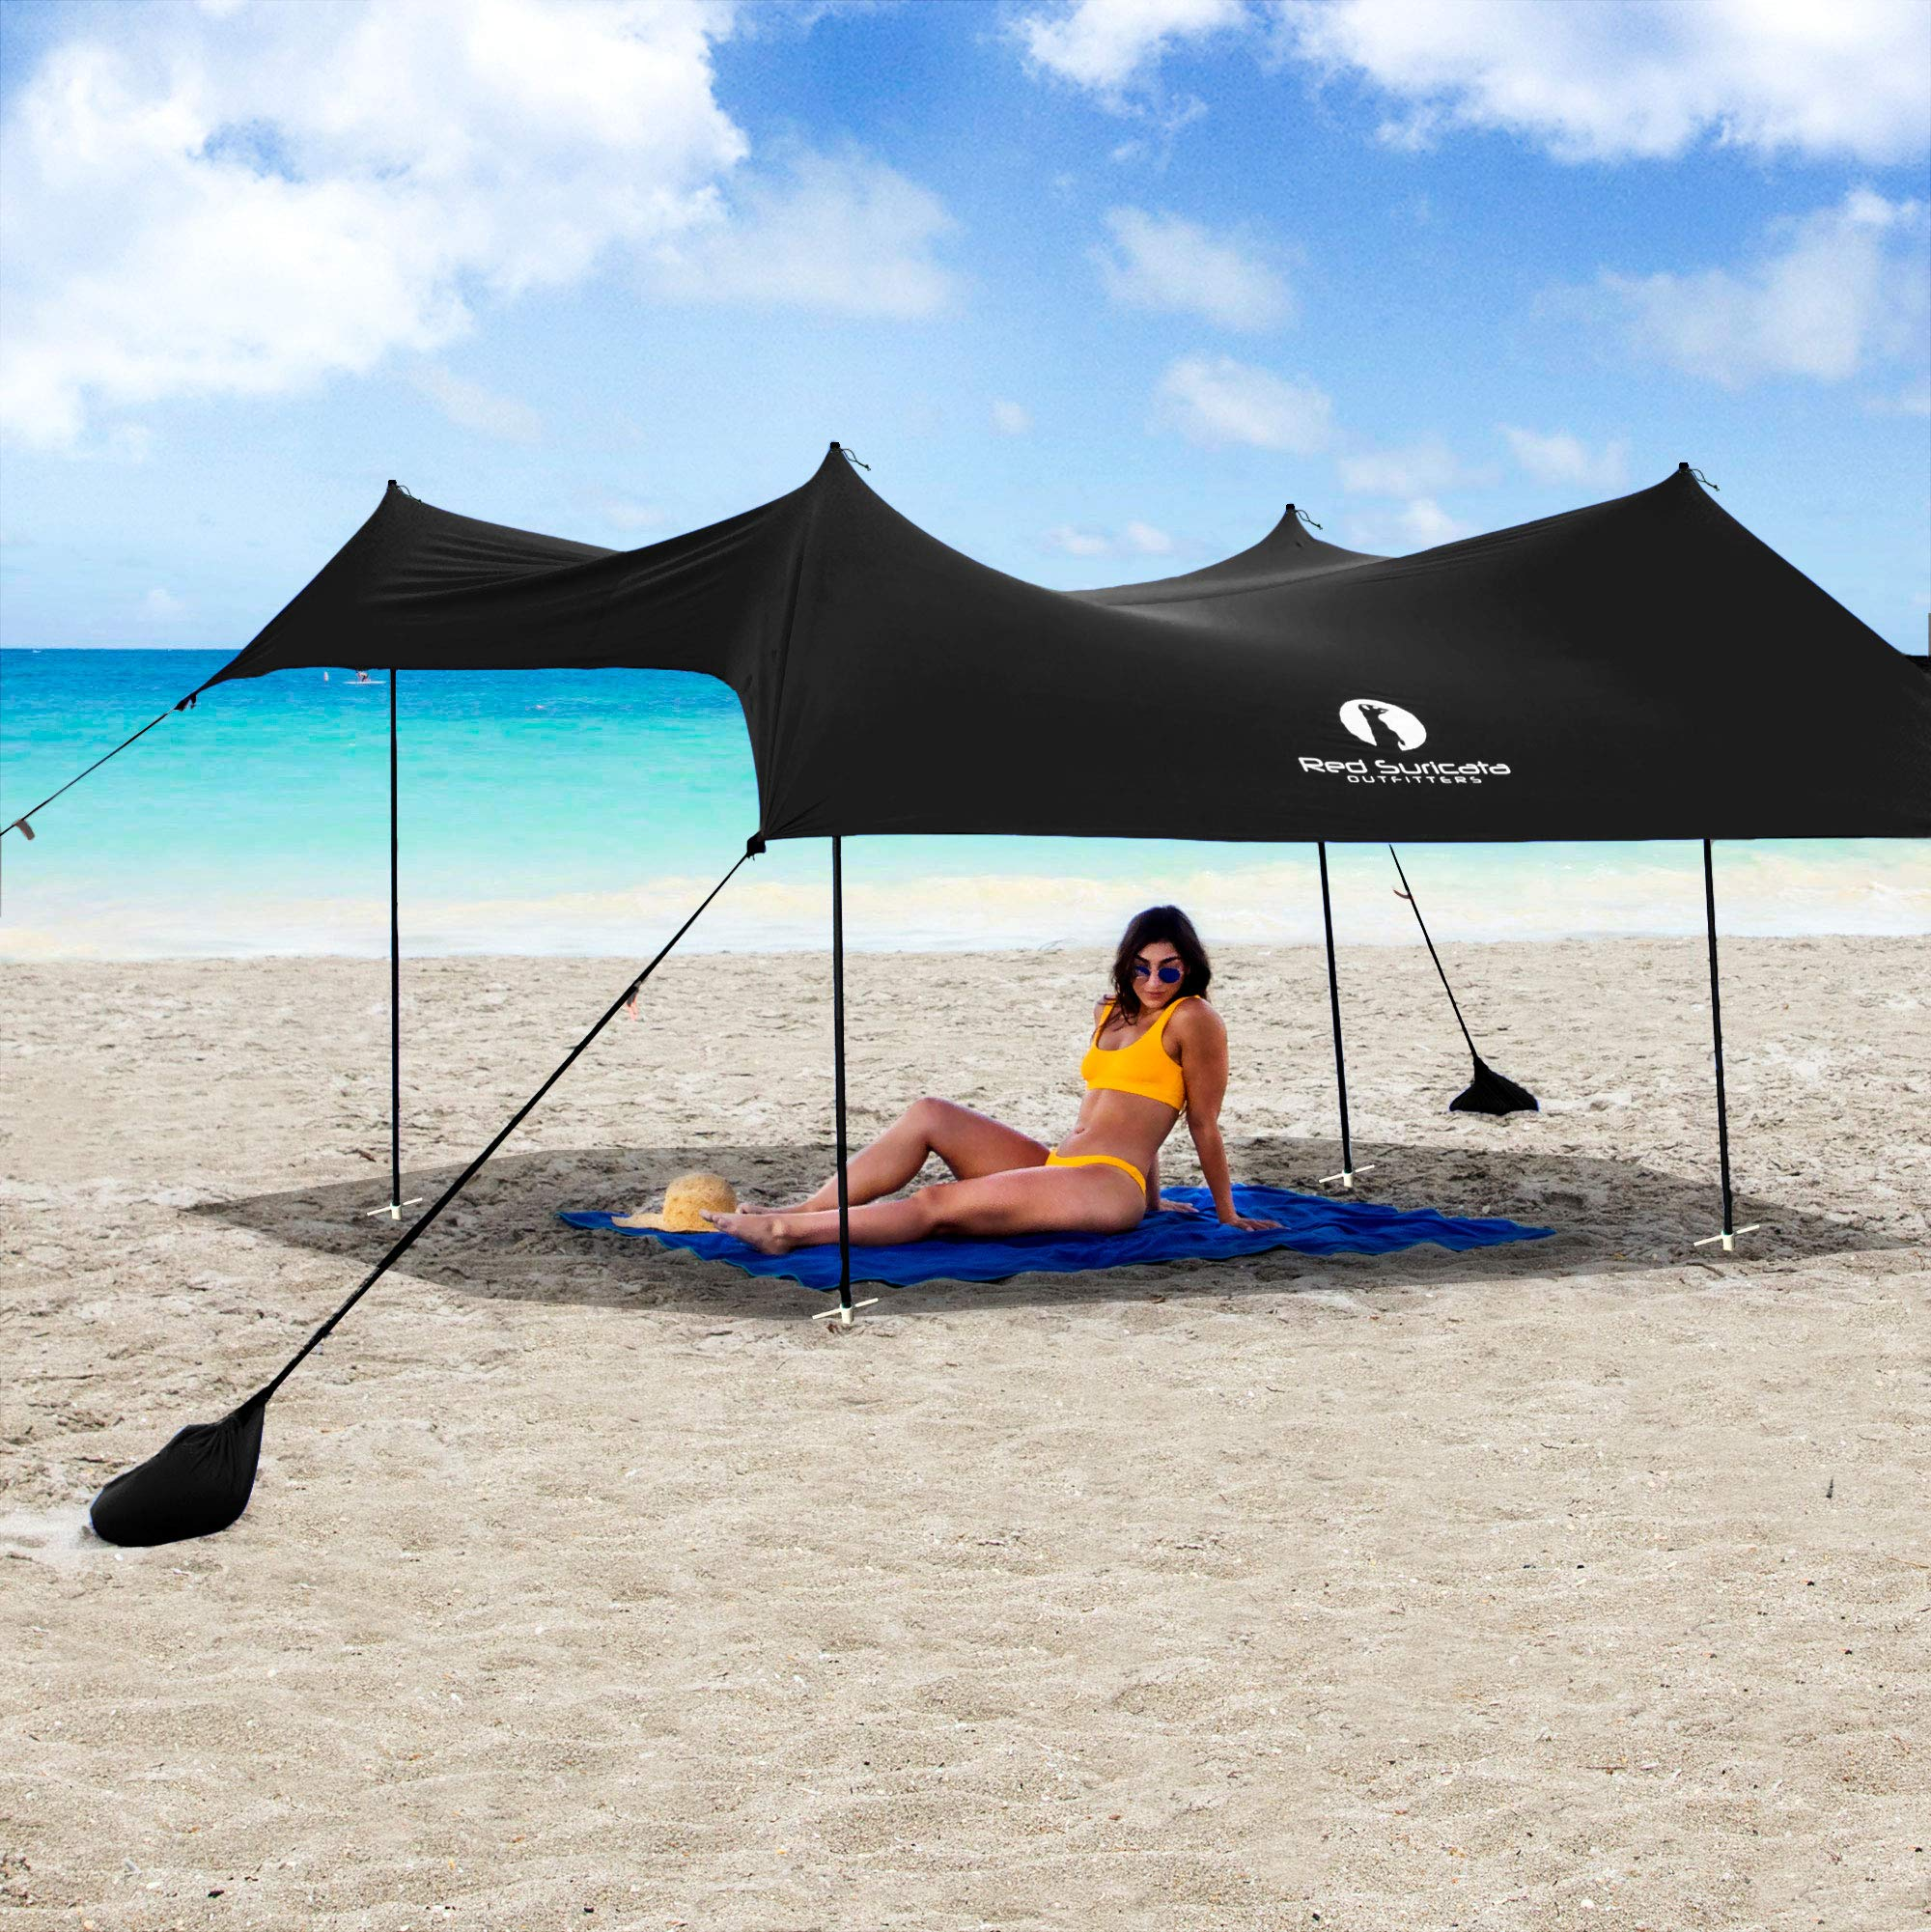 Red Suricata Family Beach Sunshade - Sun Shade Canopy | UPF50 UV Protection | Tent with 4 Aluminum Poles, 4 Pole Anchors, 4 Sandbag Anchors | Large & Portable Shelter Tarp (Black, Large 10' x 9') by Red Suricata